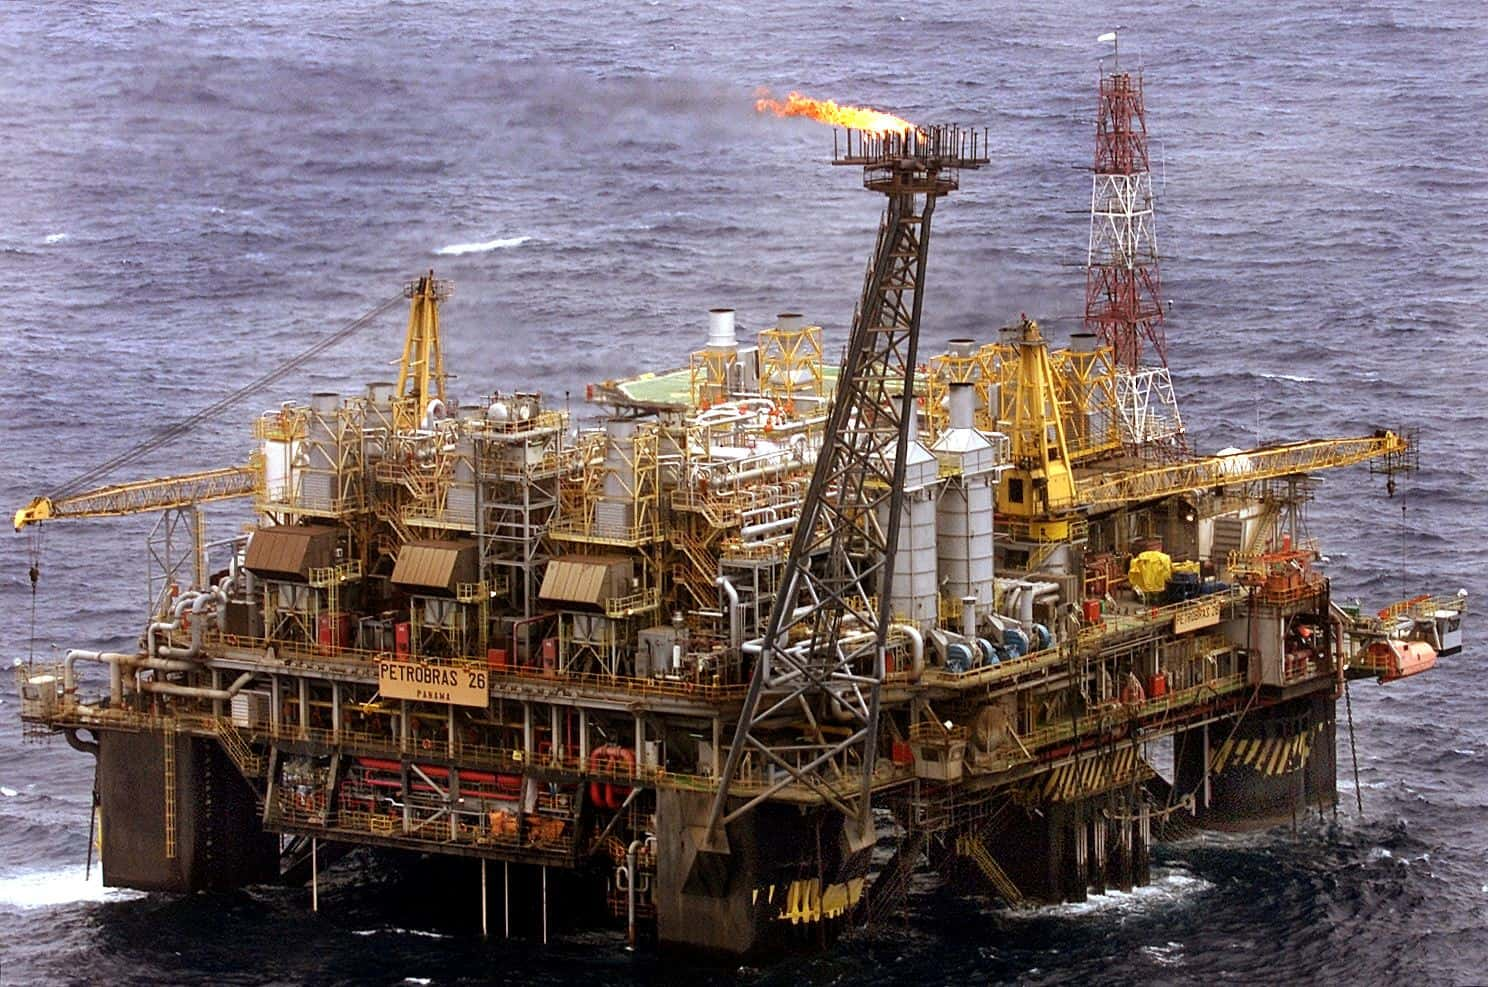 Plans approved for Uchukil O&G shallow priority assignments